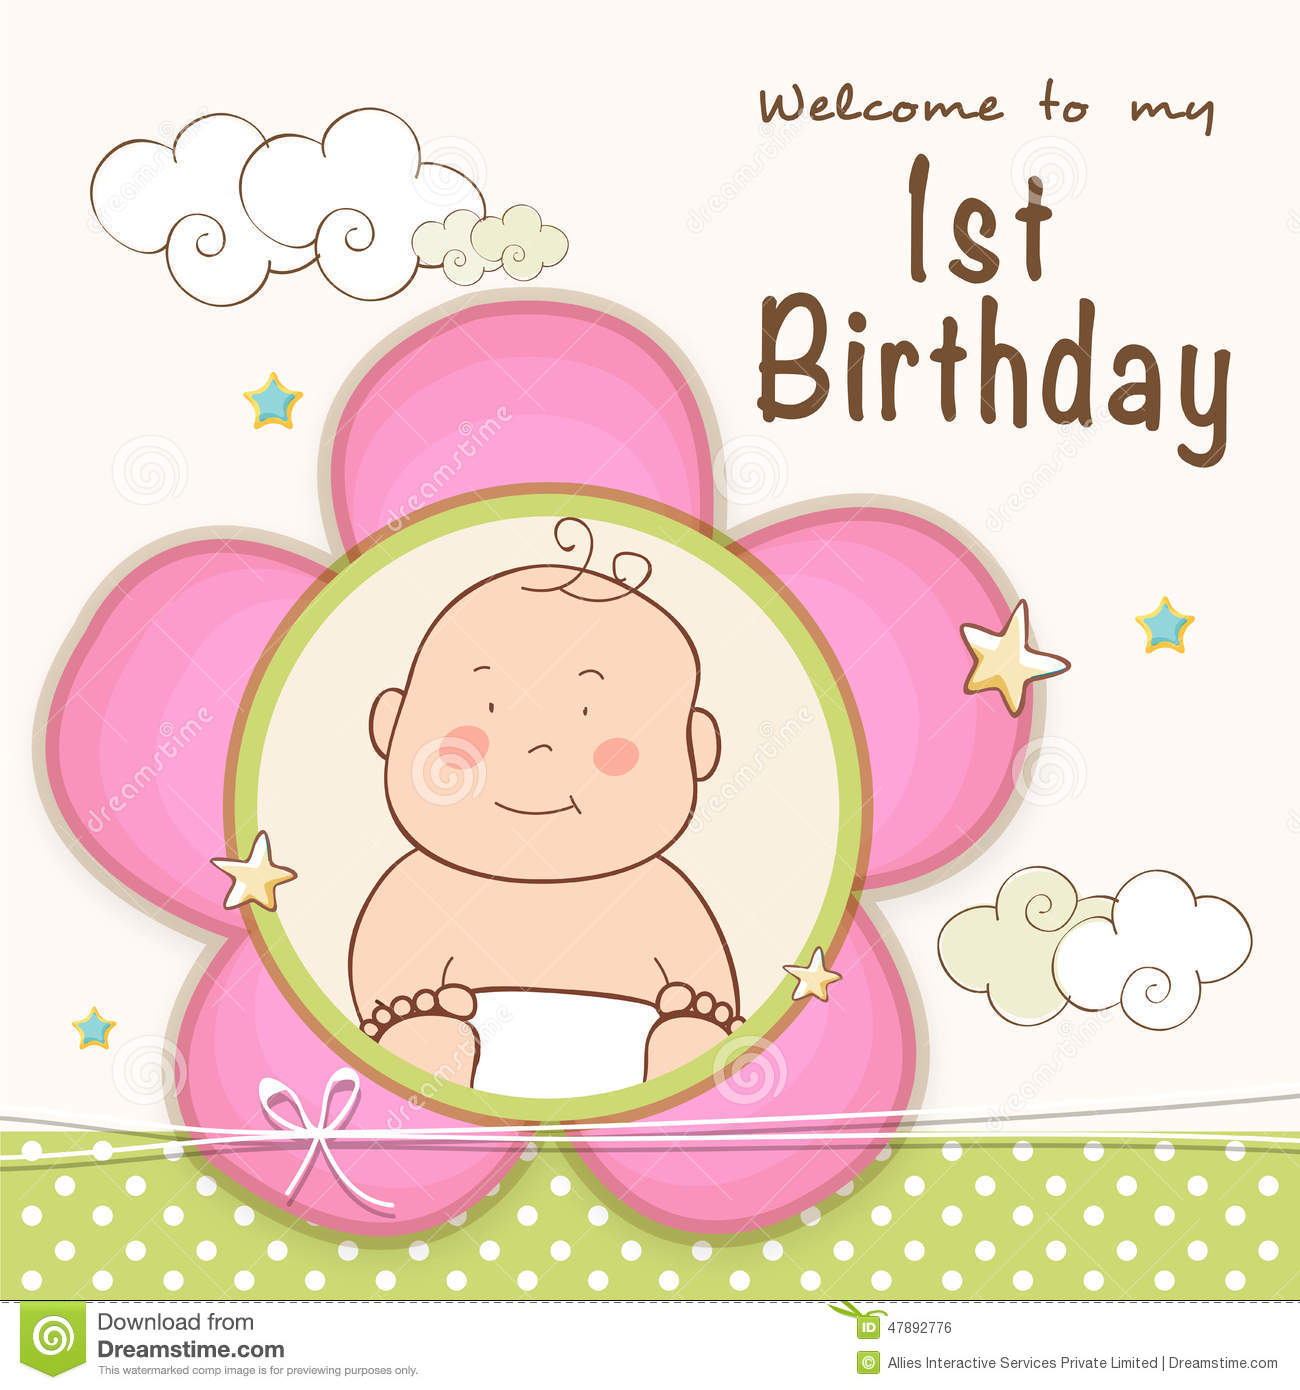 Surprising 1St Birthday Invitation Card Design Stock Illustration Funny Birthday Cards Online Inifofree Goldxyz